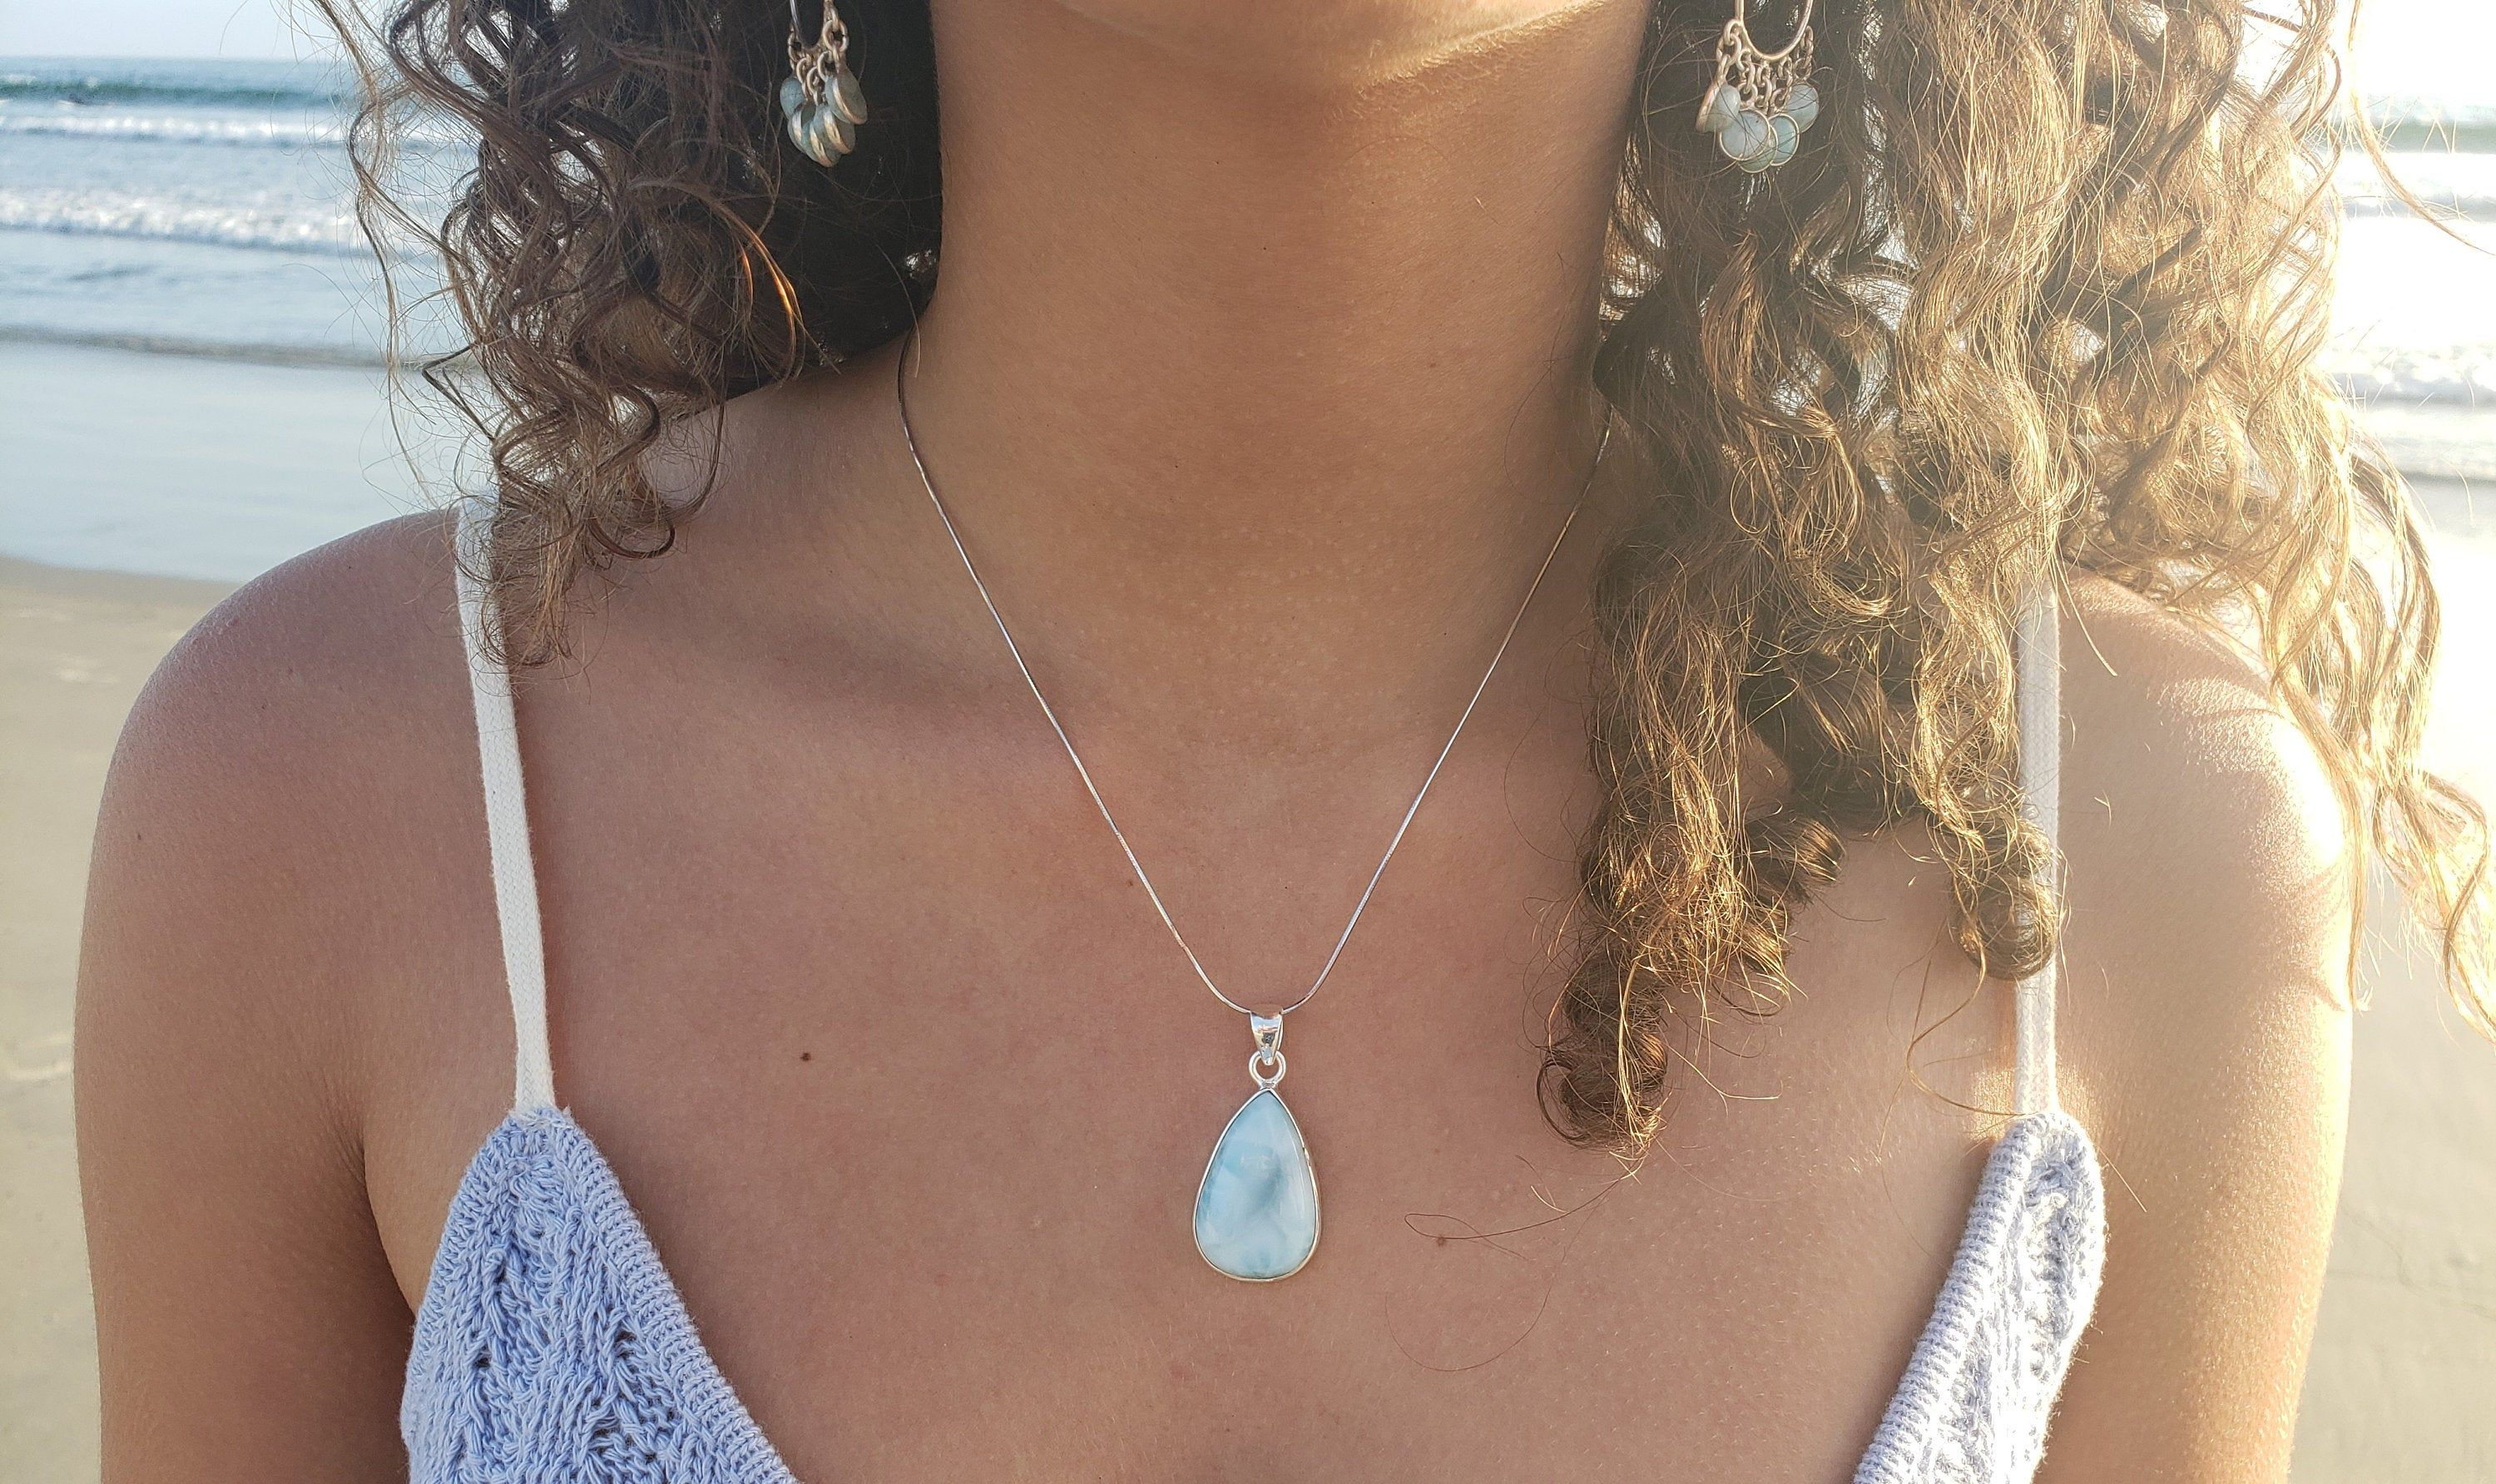 Beautiful Agate pendant Silver Necklace,Natural Gemstone Solid 925 Sterling Silver Jewelry,Teardrop pendant,Bohemian Pendant Boho Jewellry